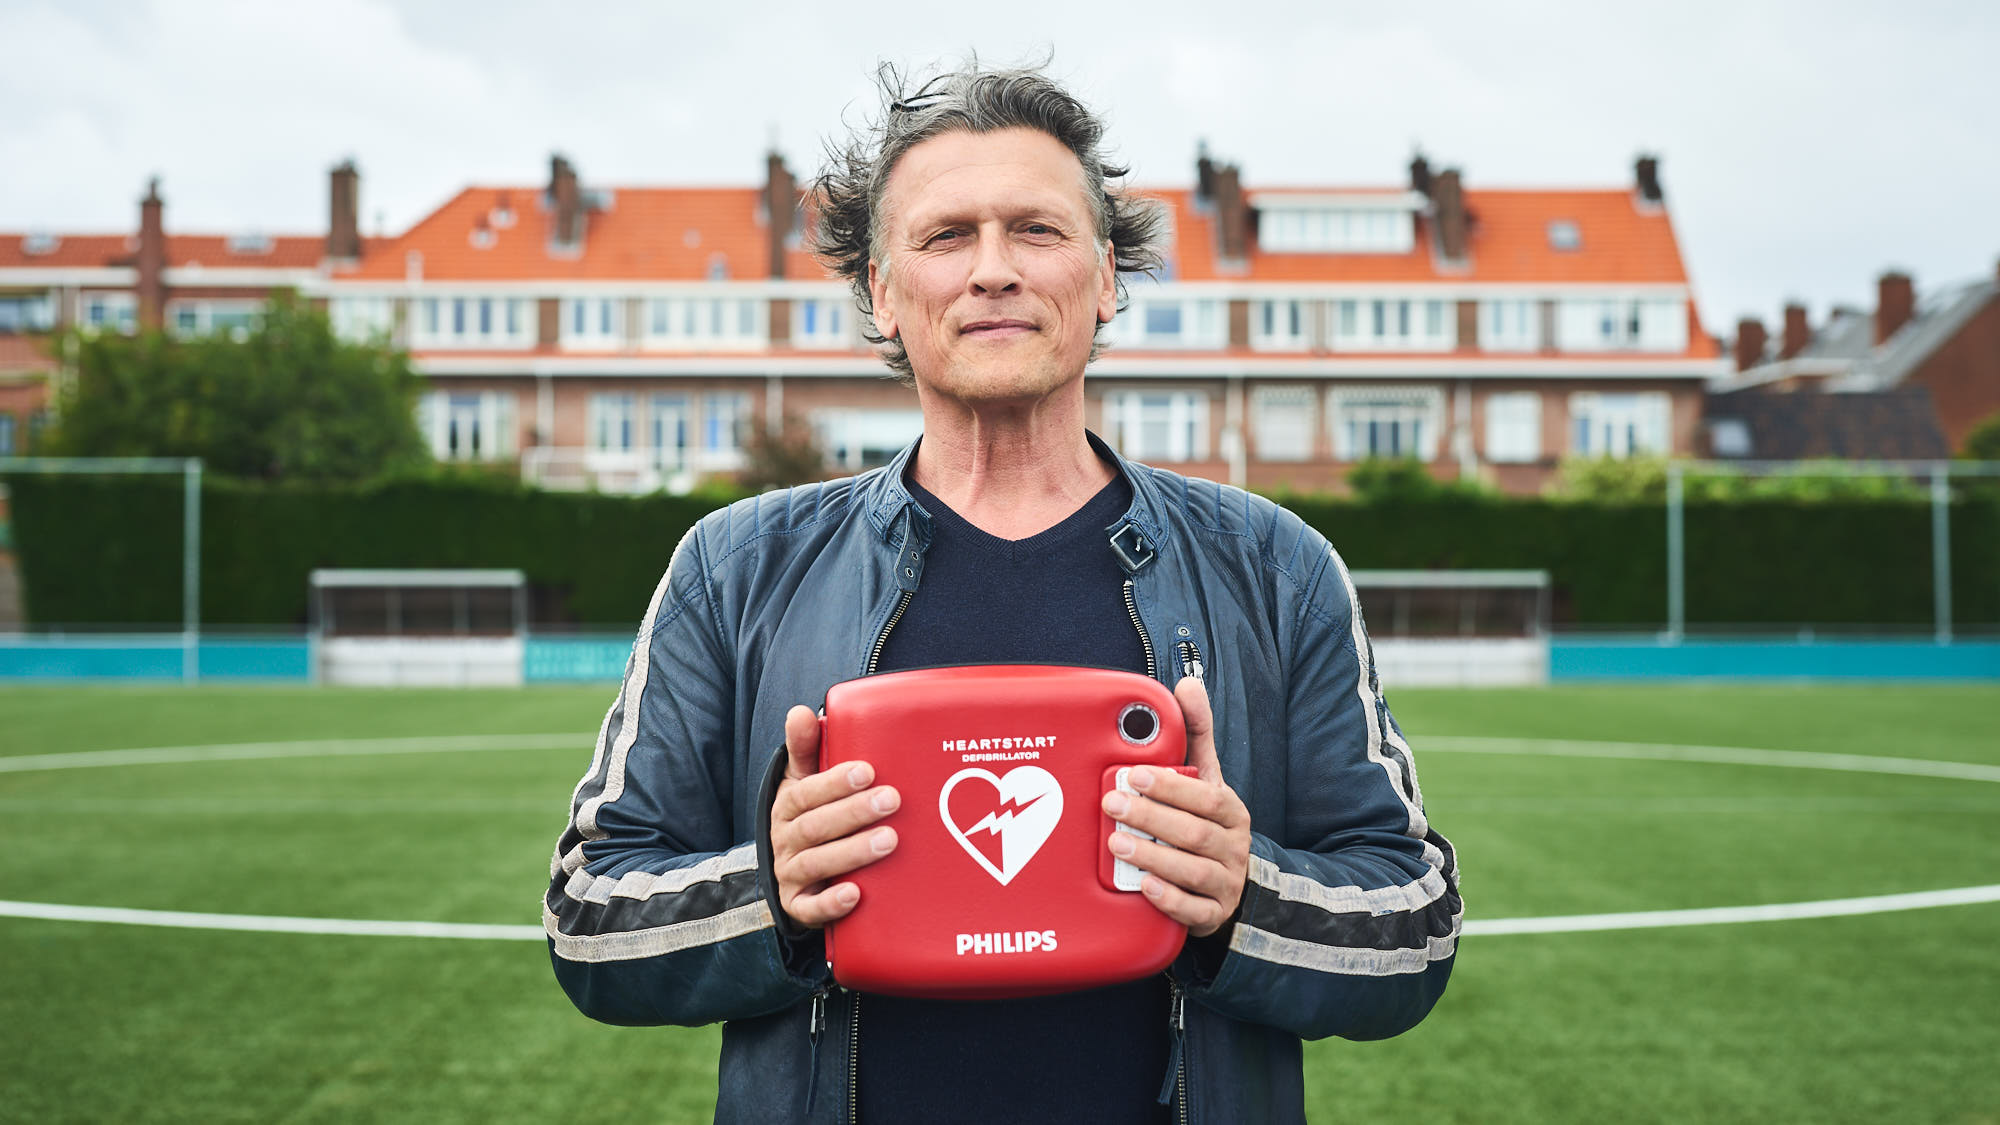 Bas Westerweel holding an AED